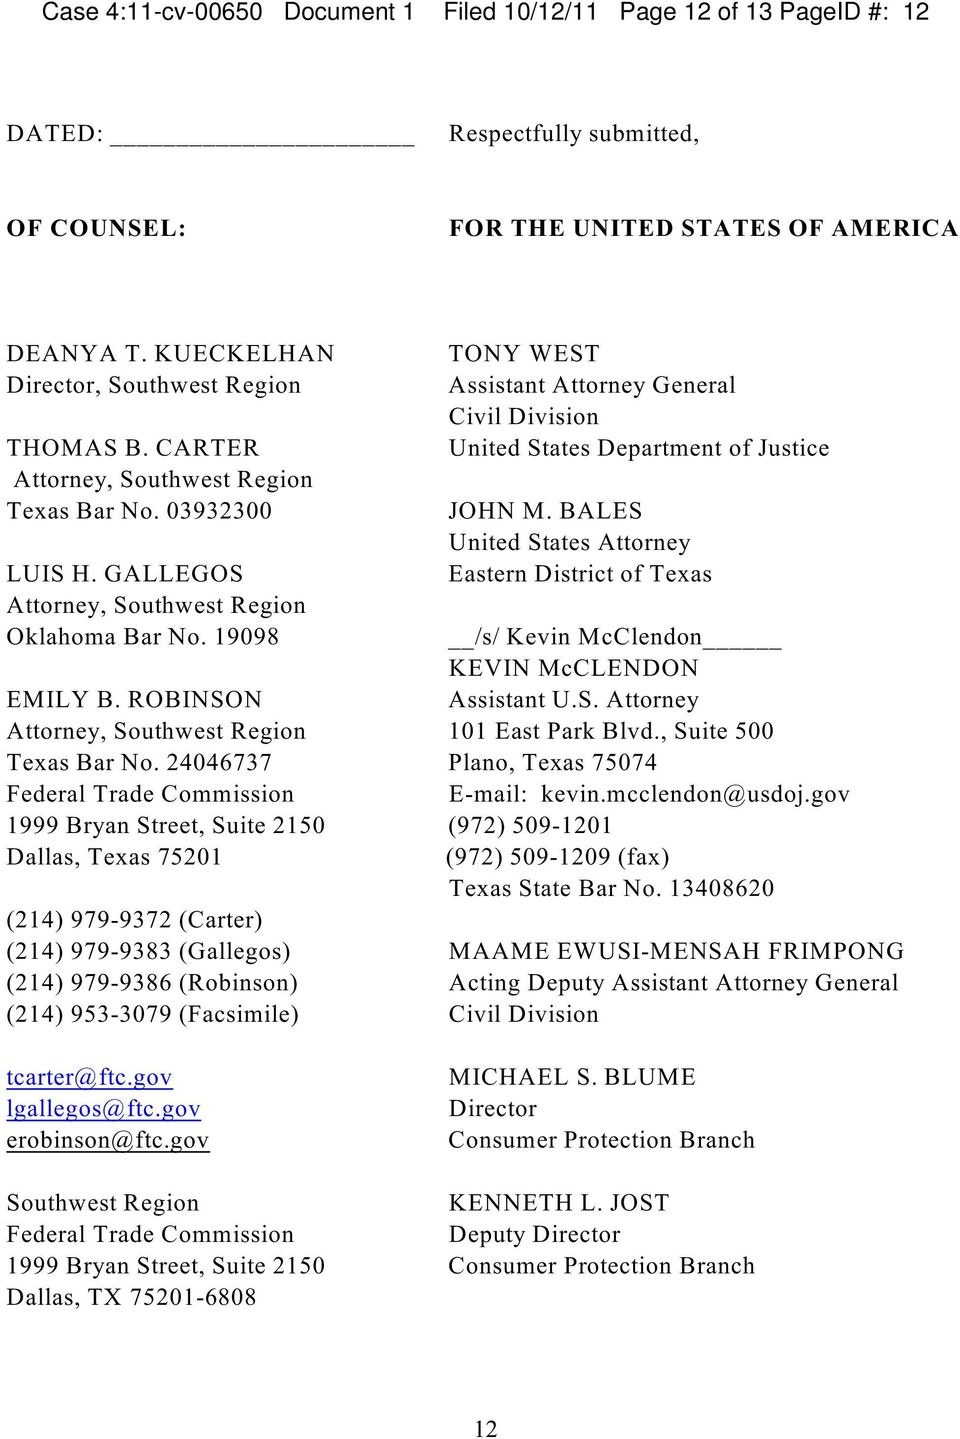 BALES United States Attorney LUIS H. GALLEGOS Eastern District of Texas Attorney, Southwest Region Oklahoma Bar No. 19098 /s/ Kevin McClendon KEVIN McCLENDON EMILY B. ROBINSON Assistant U.S. Attorney Attorney, Southwest Region 101 East Park Blvd.